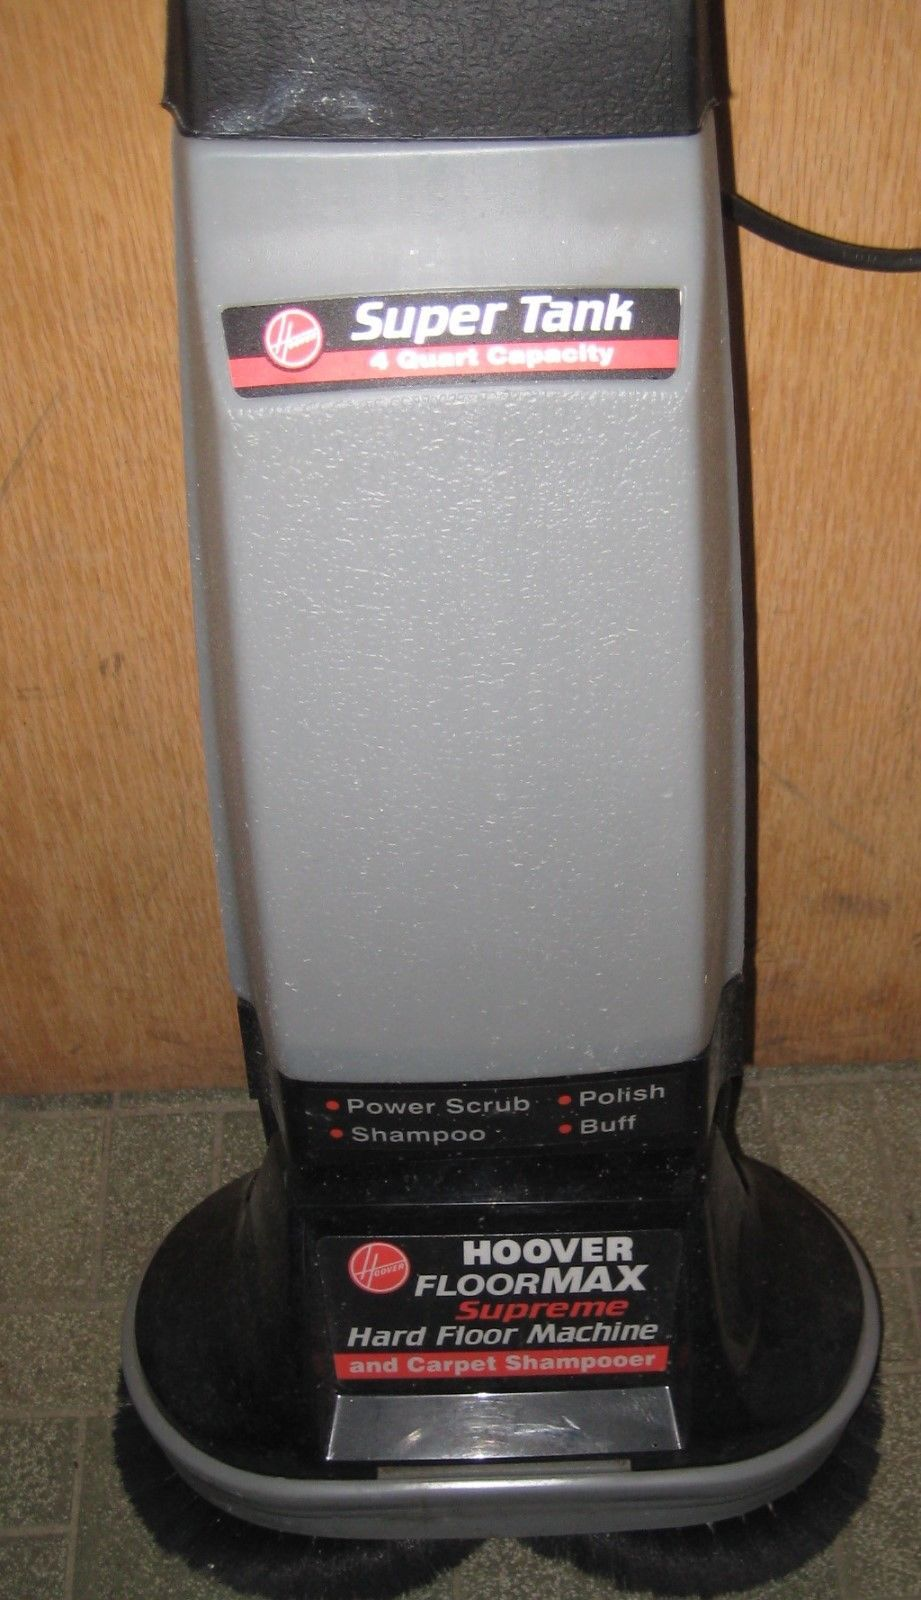 Hoover Floormax Supreme F4300 Carpet Shampooer Super Tank